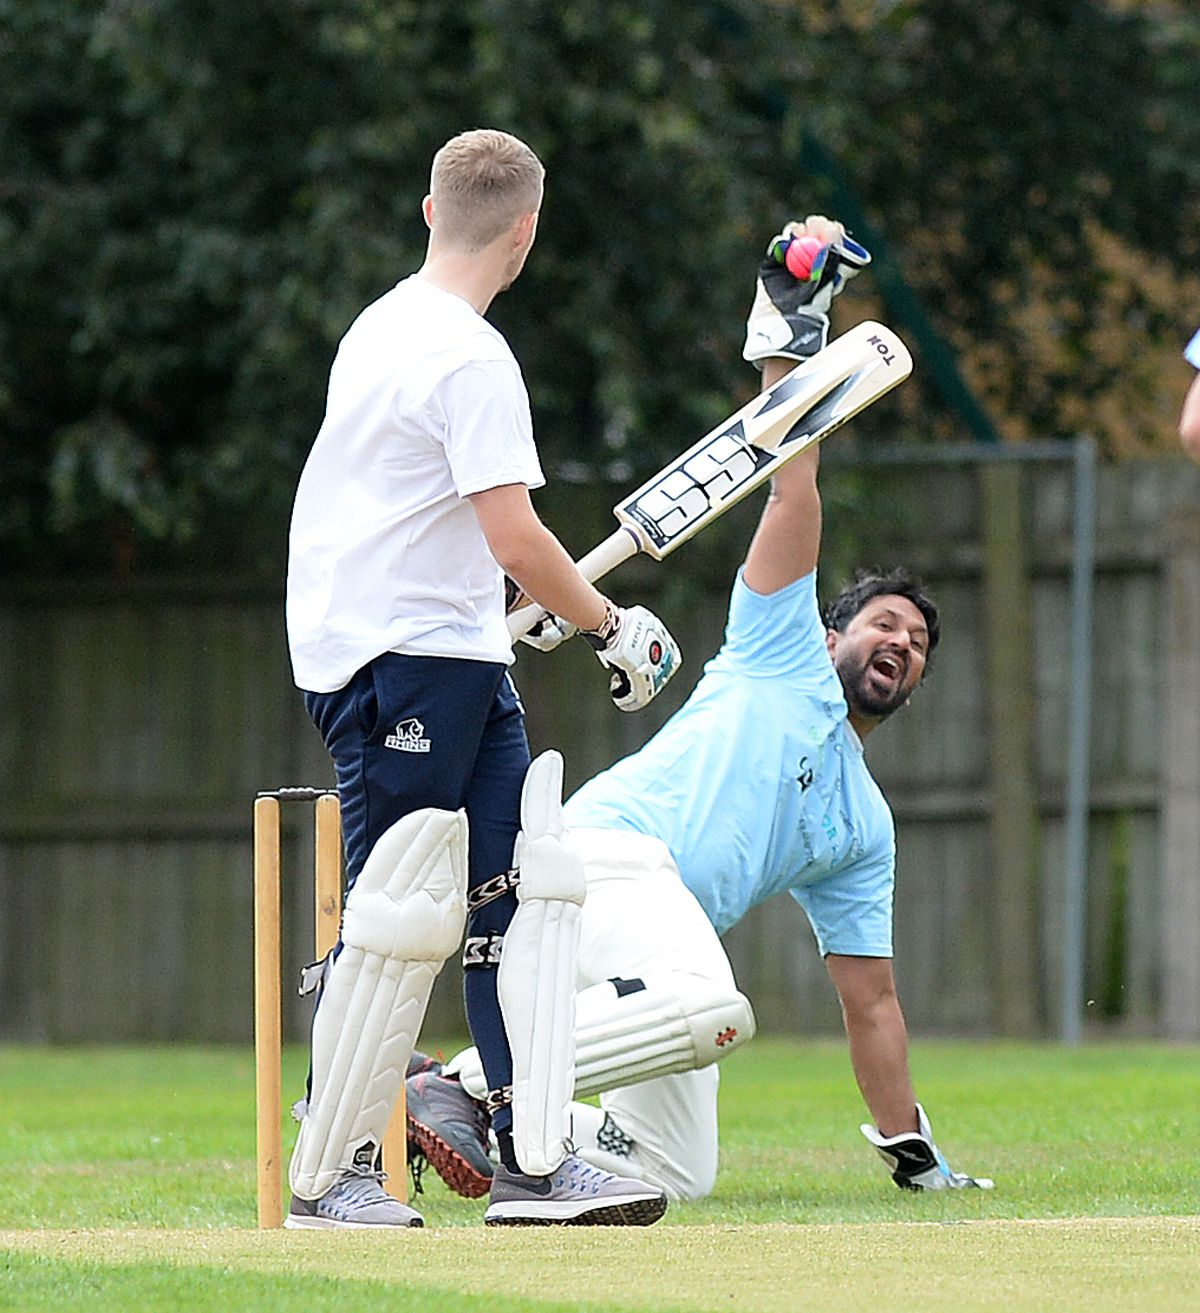 Imran Suddle claims a wicket for Walsall for All